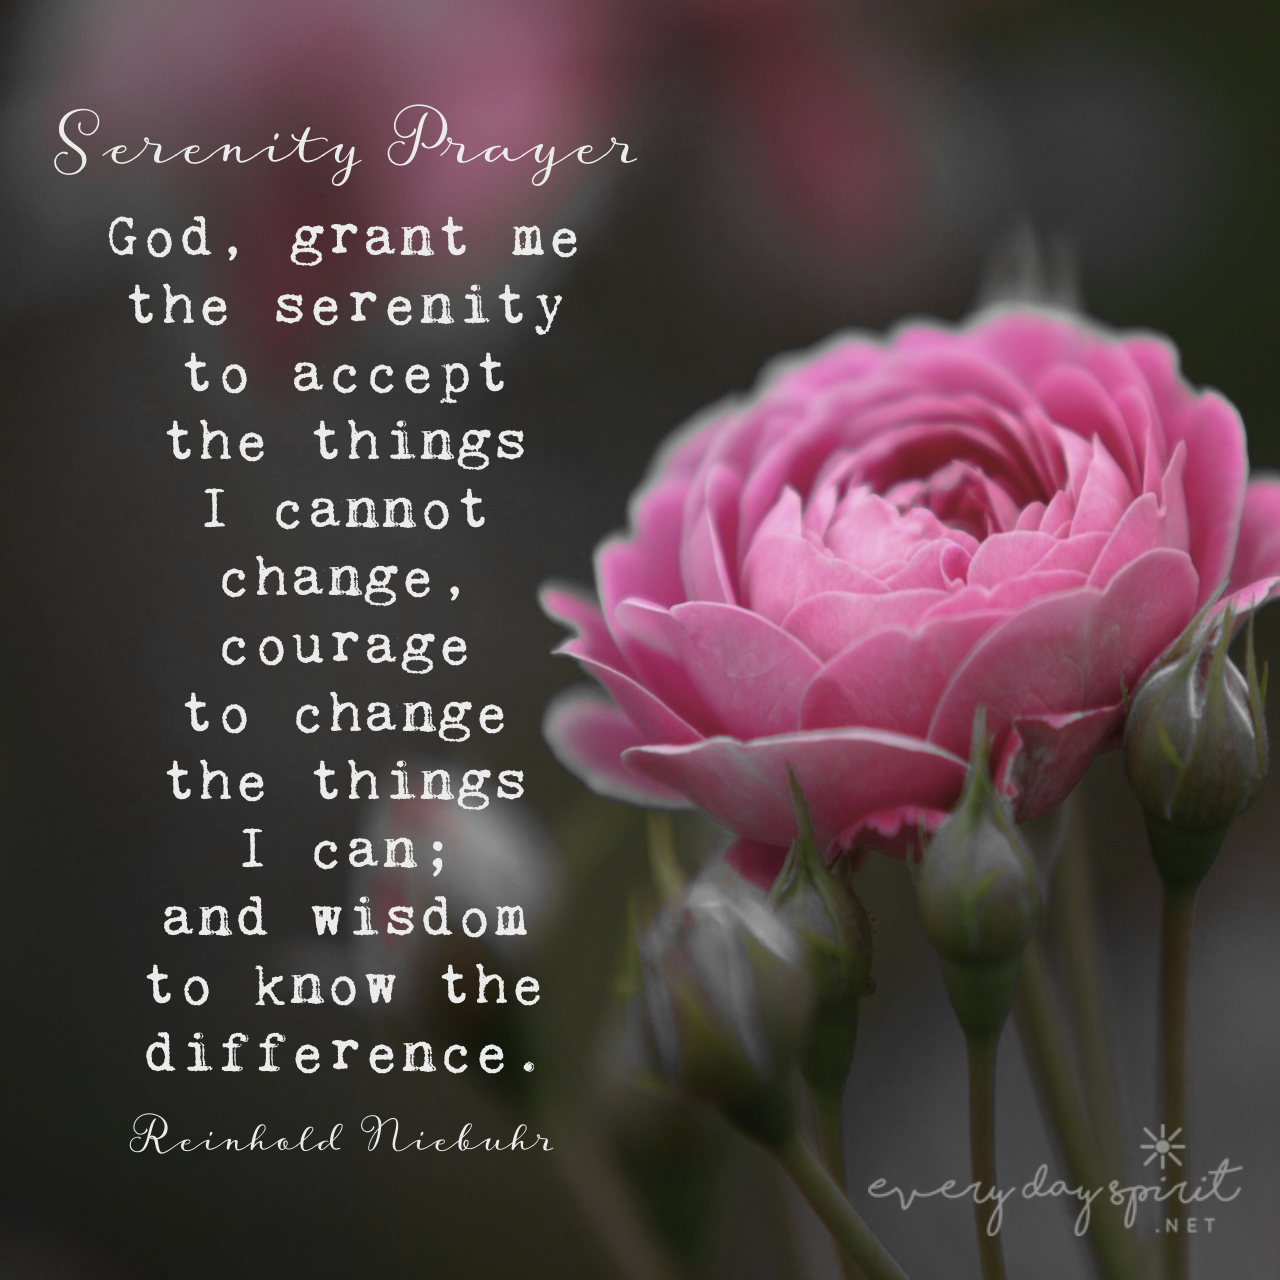 A Prayer For Serenity Courage And Wisdom Xo Every Day Spirit A Daybook Of Wisdom Joy And P Serenity Prayer Serenity Prayer Wallpaper Serenity Prayer Framed